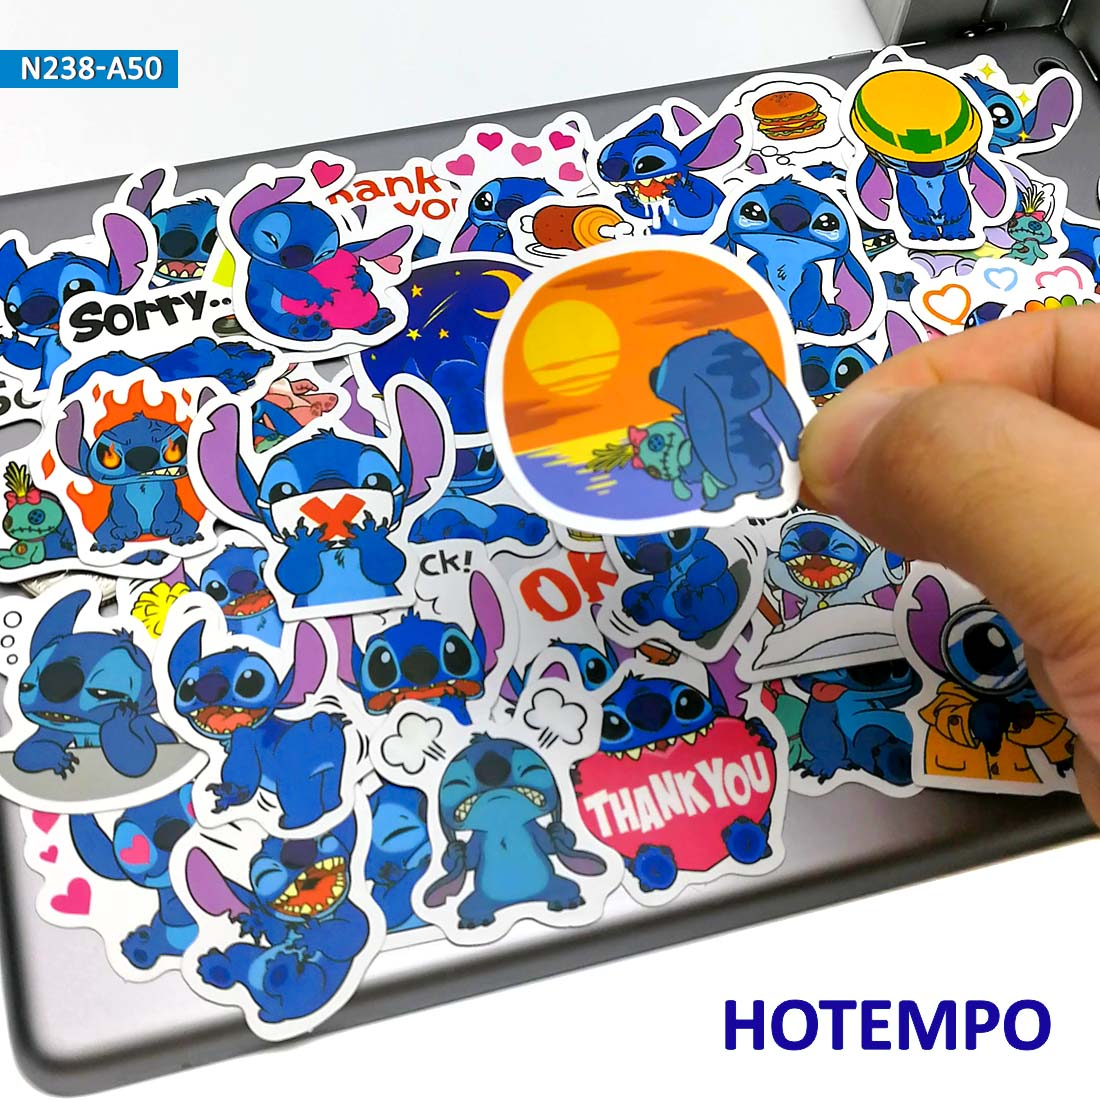 50pcs Cute Lilo Stitch Cartoon Stationery Anime Scrapbooking Stickers For Children Mobile Phone Laptop Guitar Skateboard Sticker